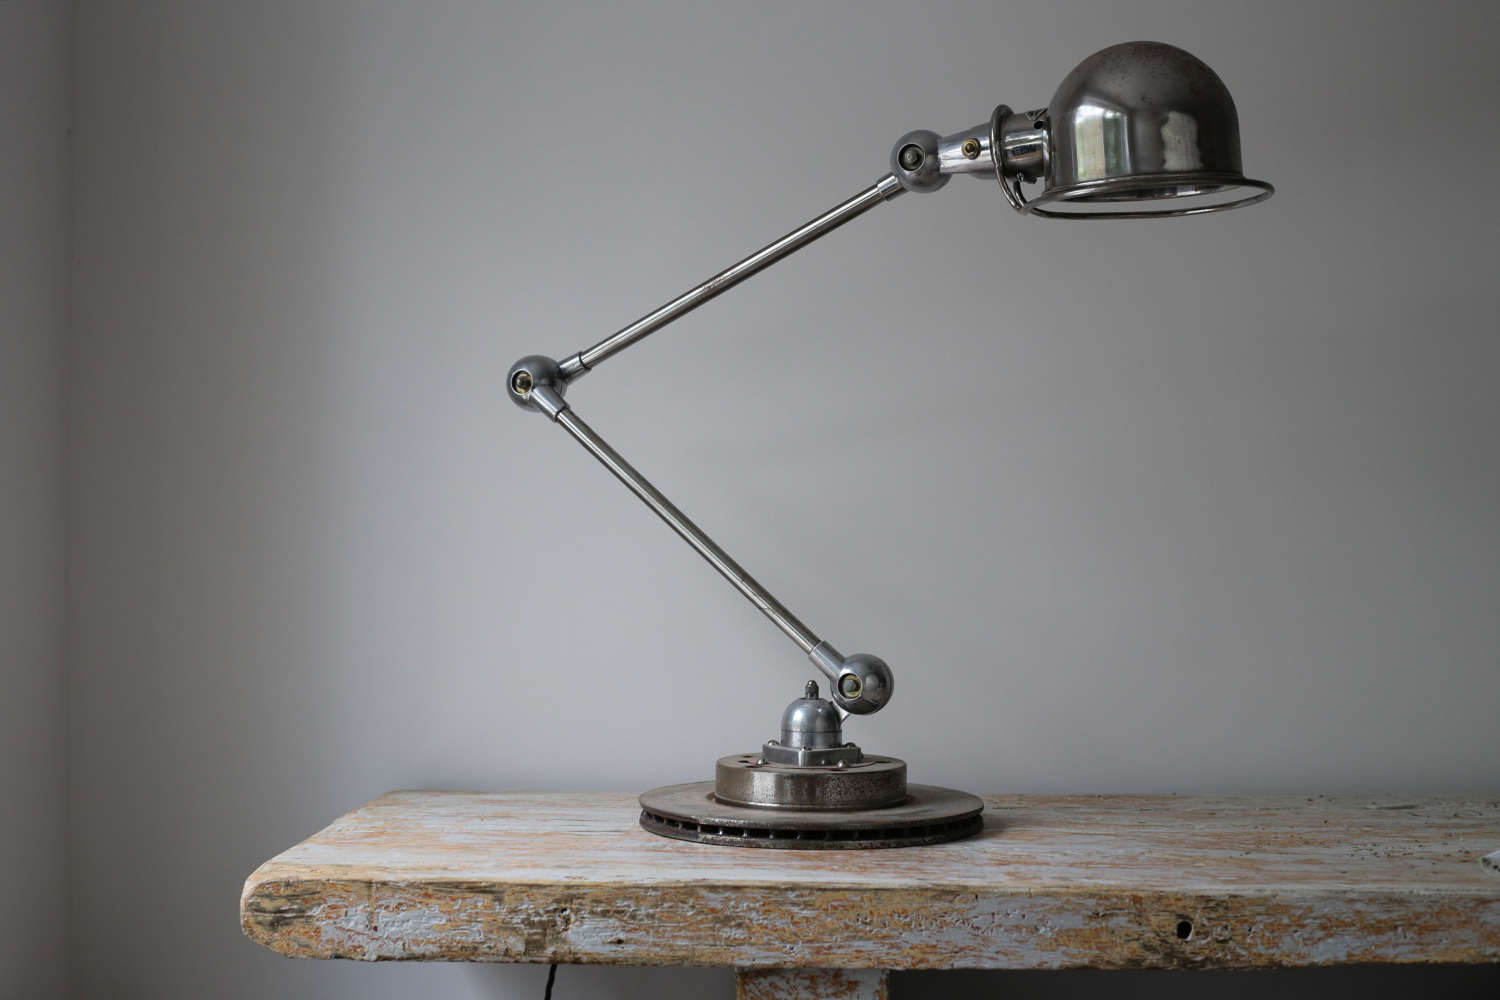 20th century French industrial worklamp by Jielde